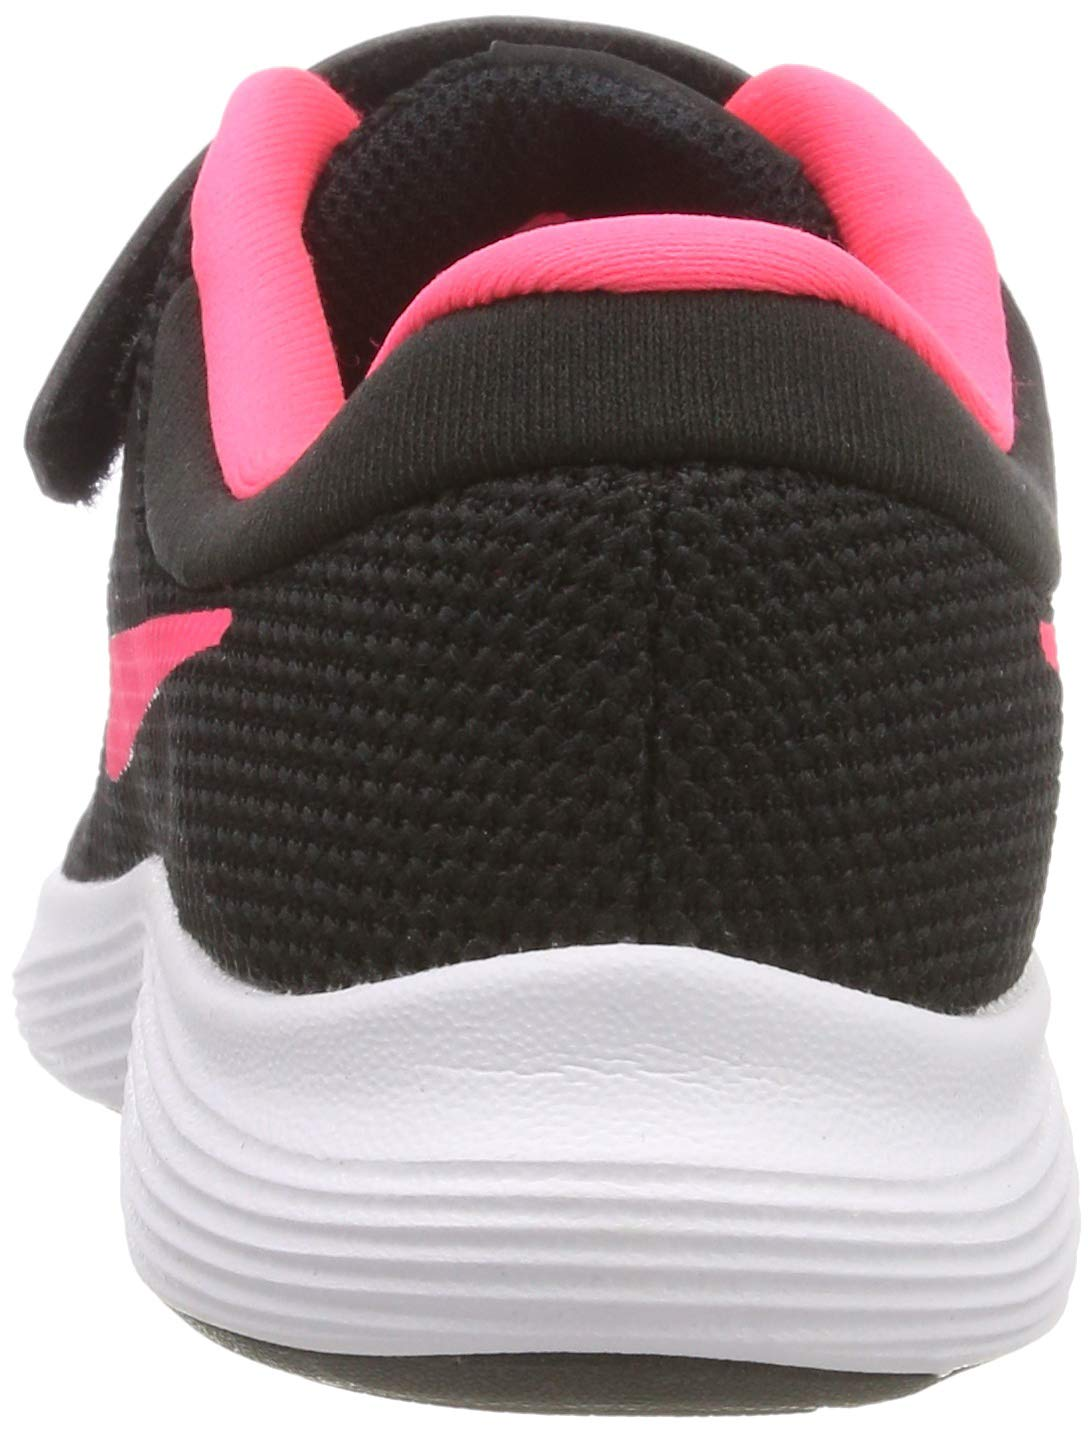 Nike Girls' Revolution 4 (PSV) Running Shoe, Black/Racer Pink - White, 12C Regular US Little Kid by Nike (Image #2)